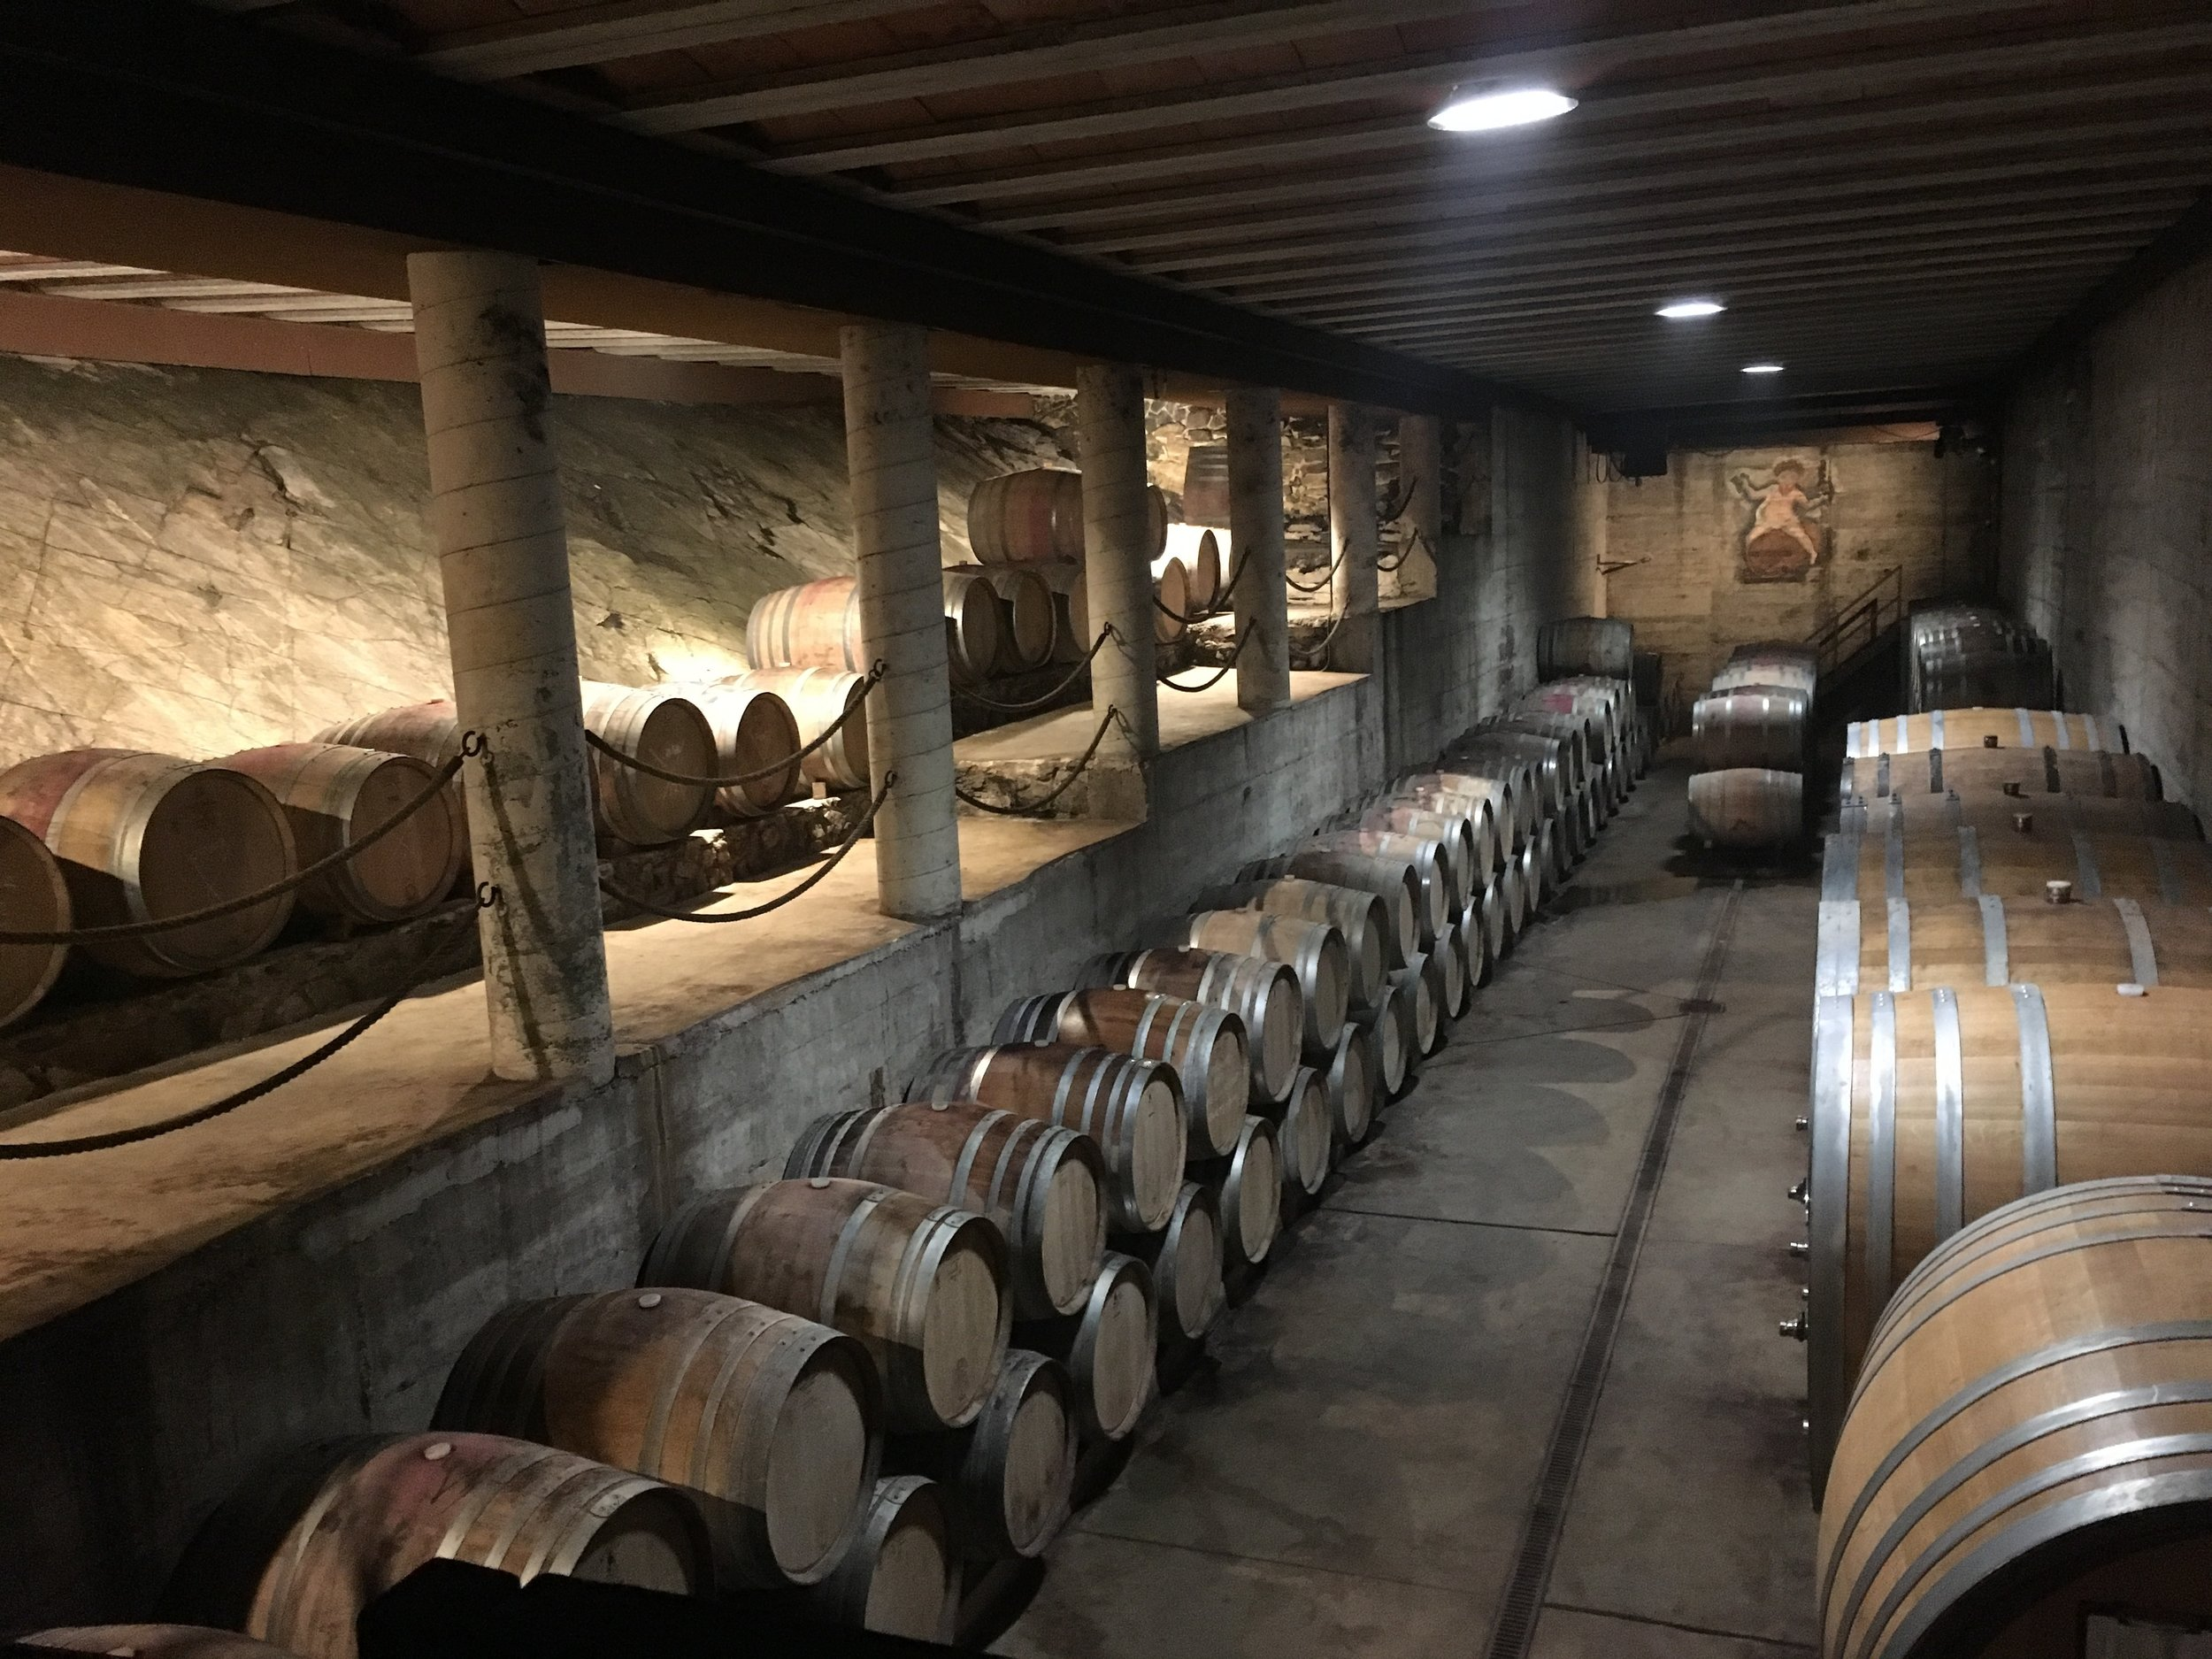 The Clos Mogador cellar is carved into the rock on the top of a mountain